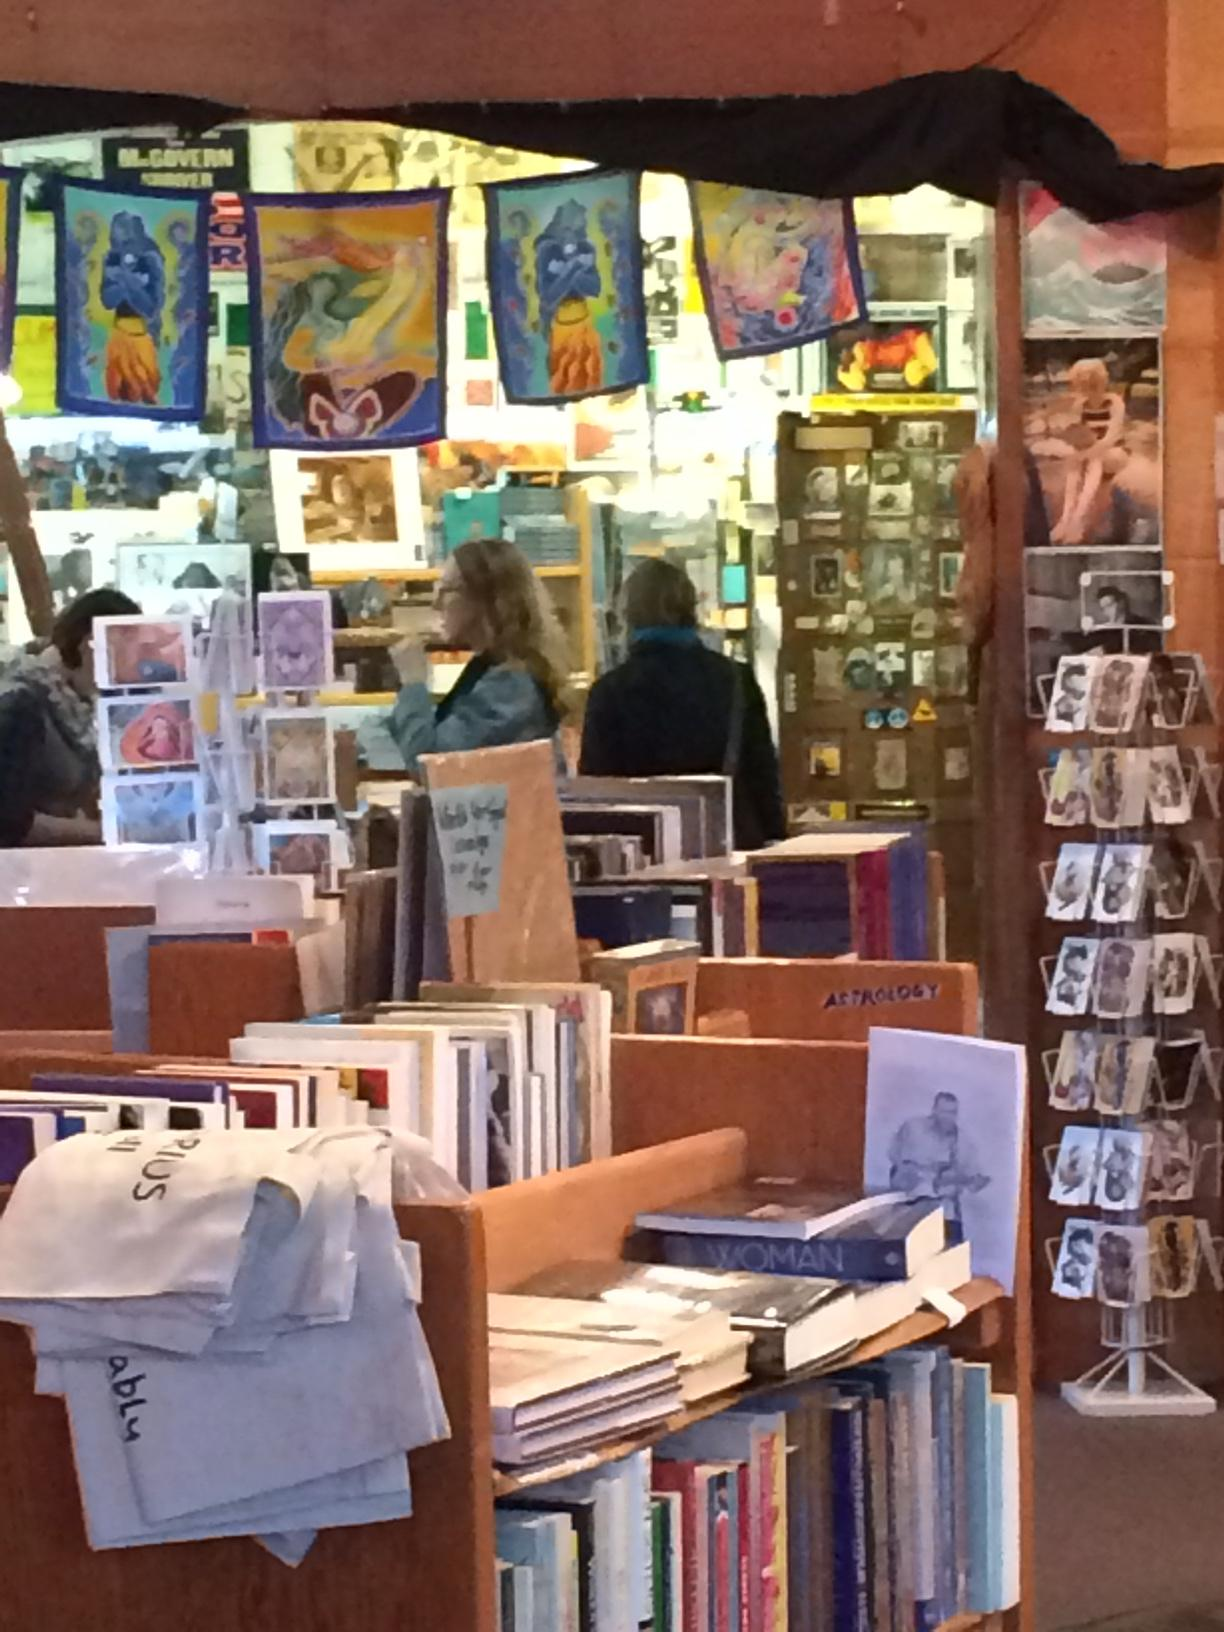 Tsunami Books is at risk of losing its location on Willamette Street. The store owner says rent is going up and several other business owners have their eye on the location. (SBG photo)